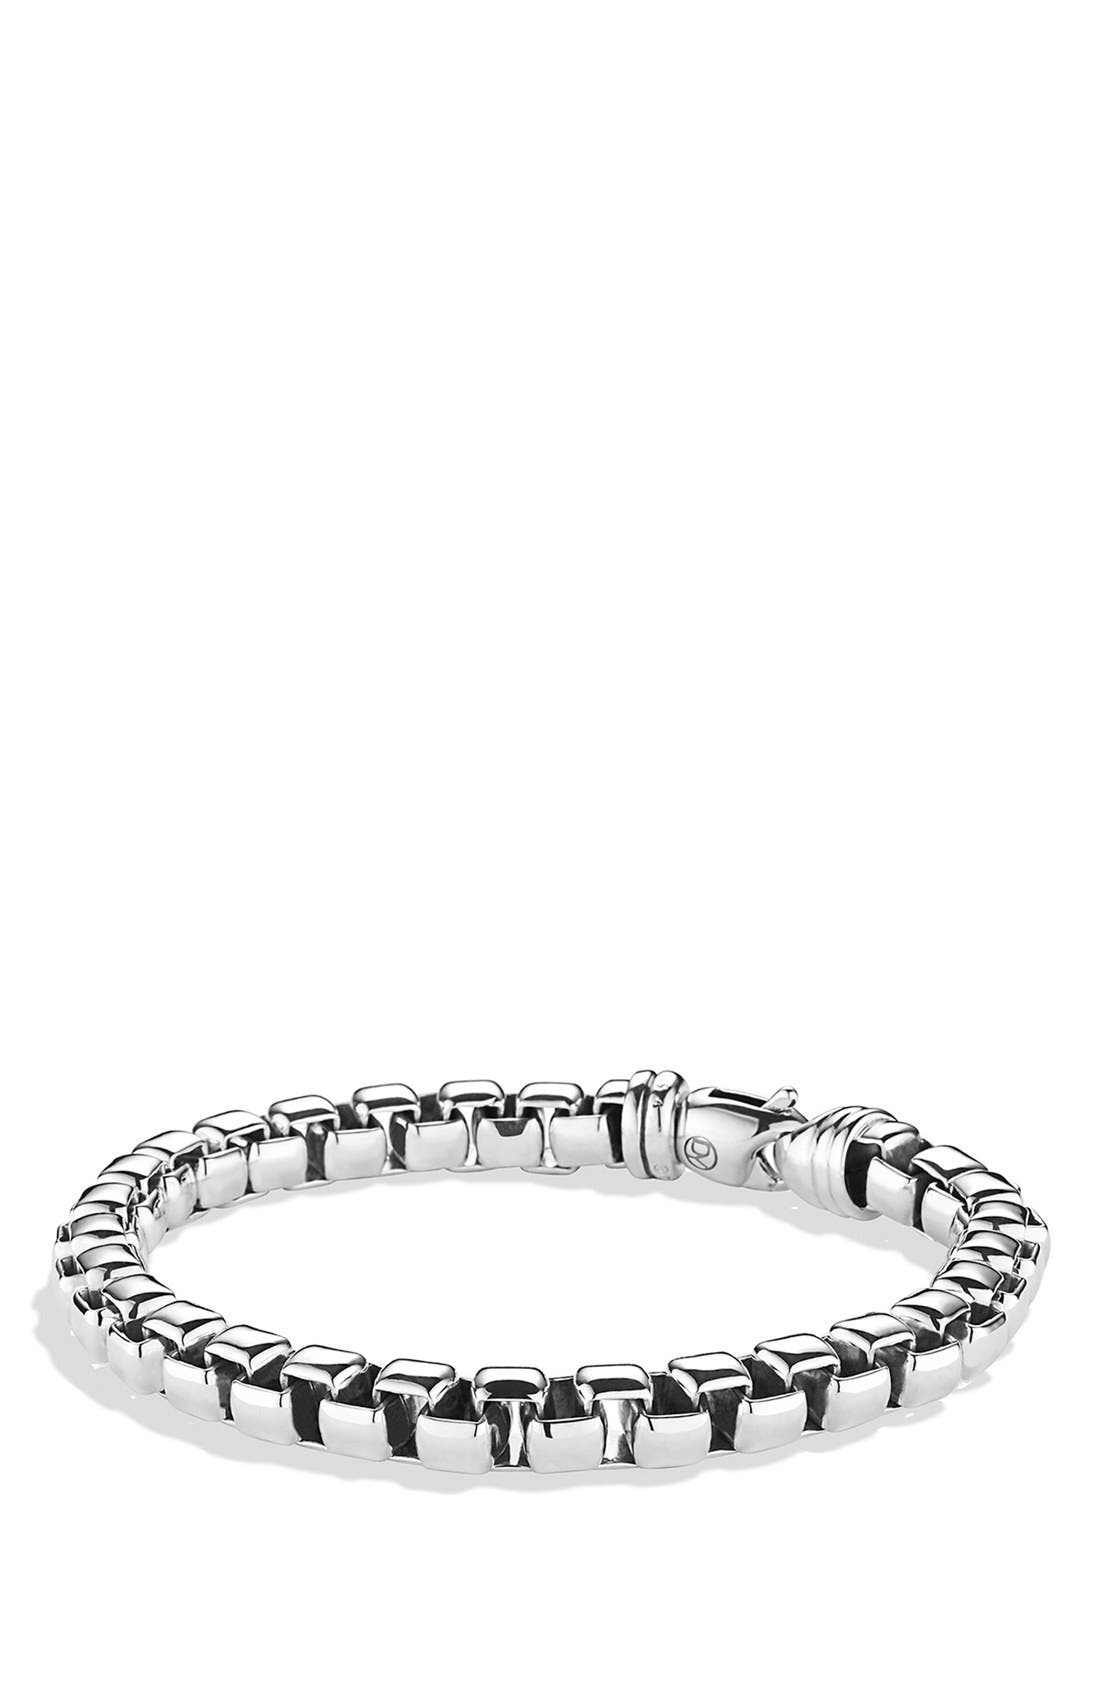 David Yurman ExtraLarge Box Chain Bracelet Nordstrom